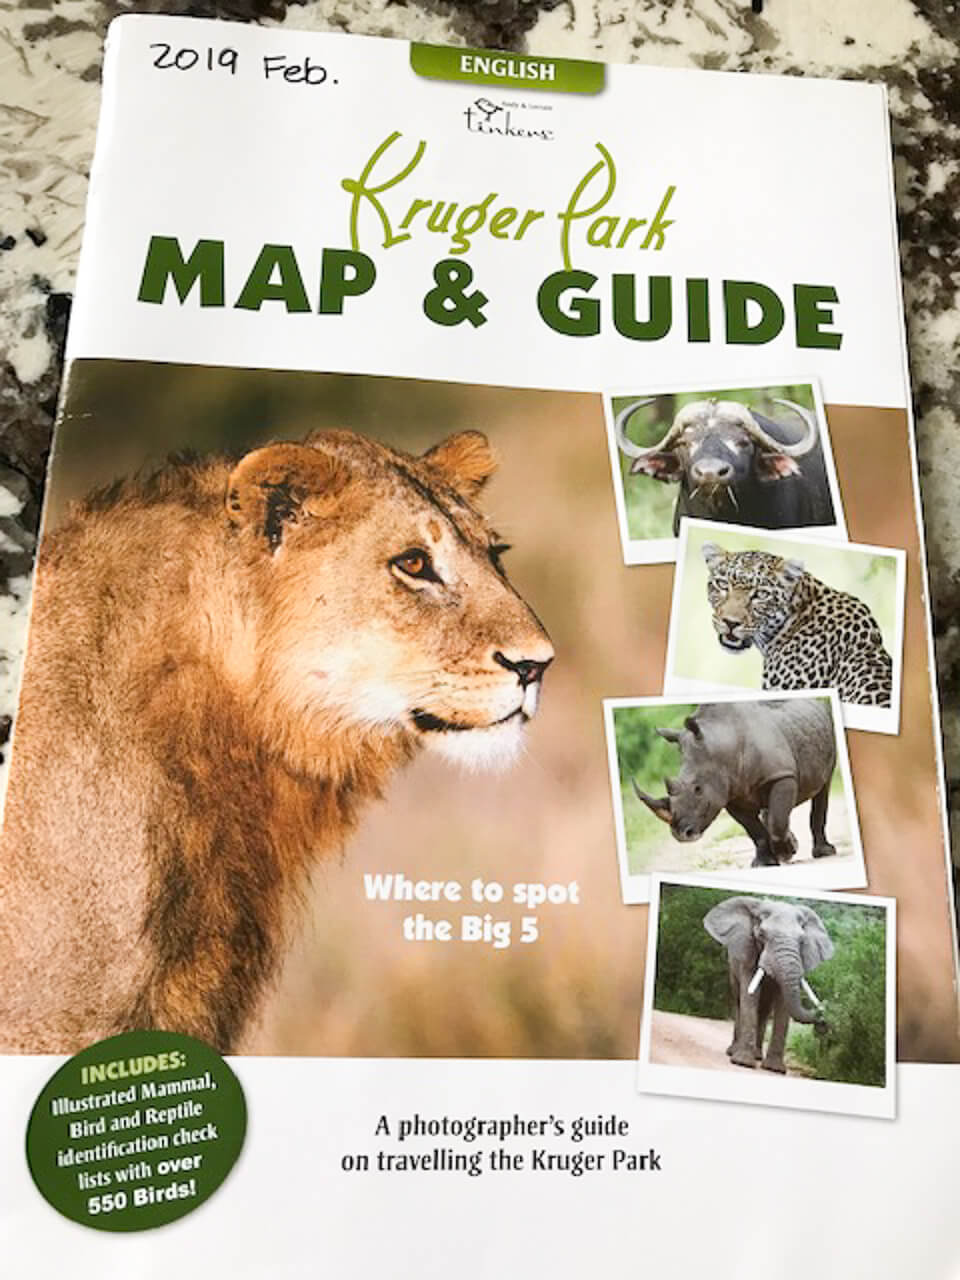 Kruger Park map and guide cover.